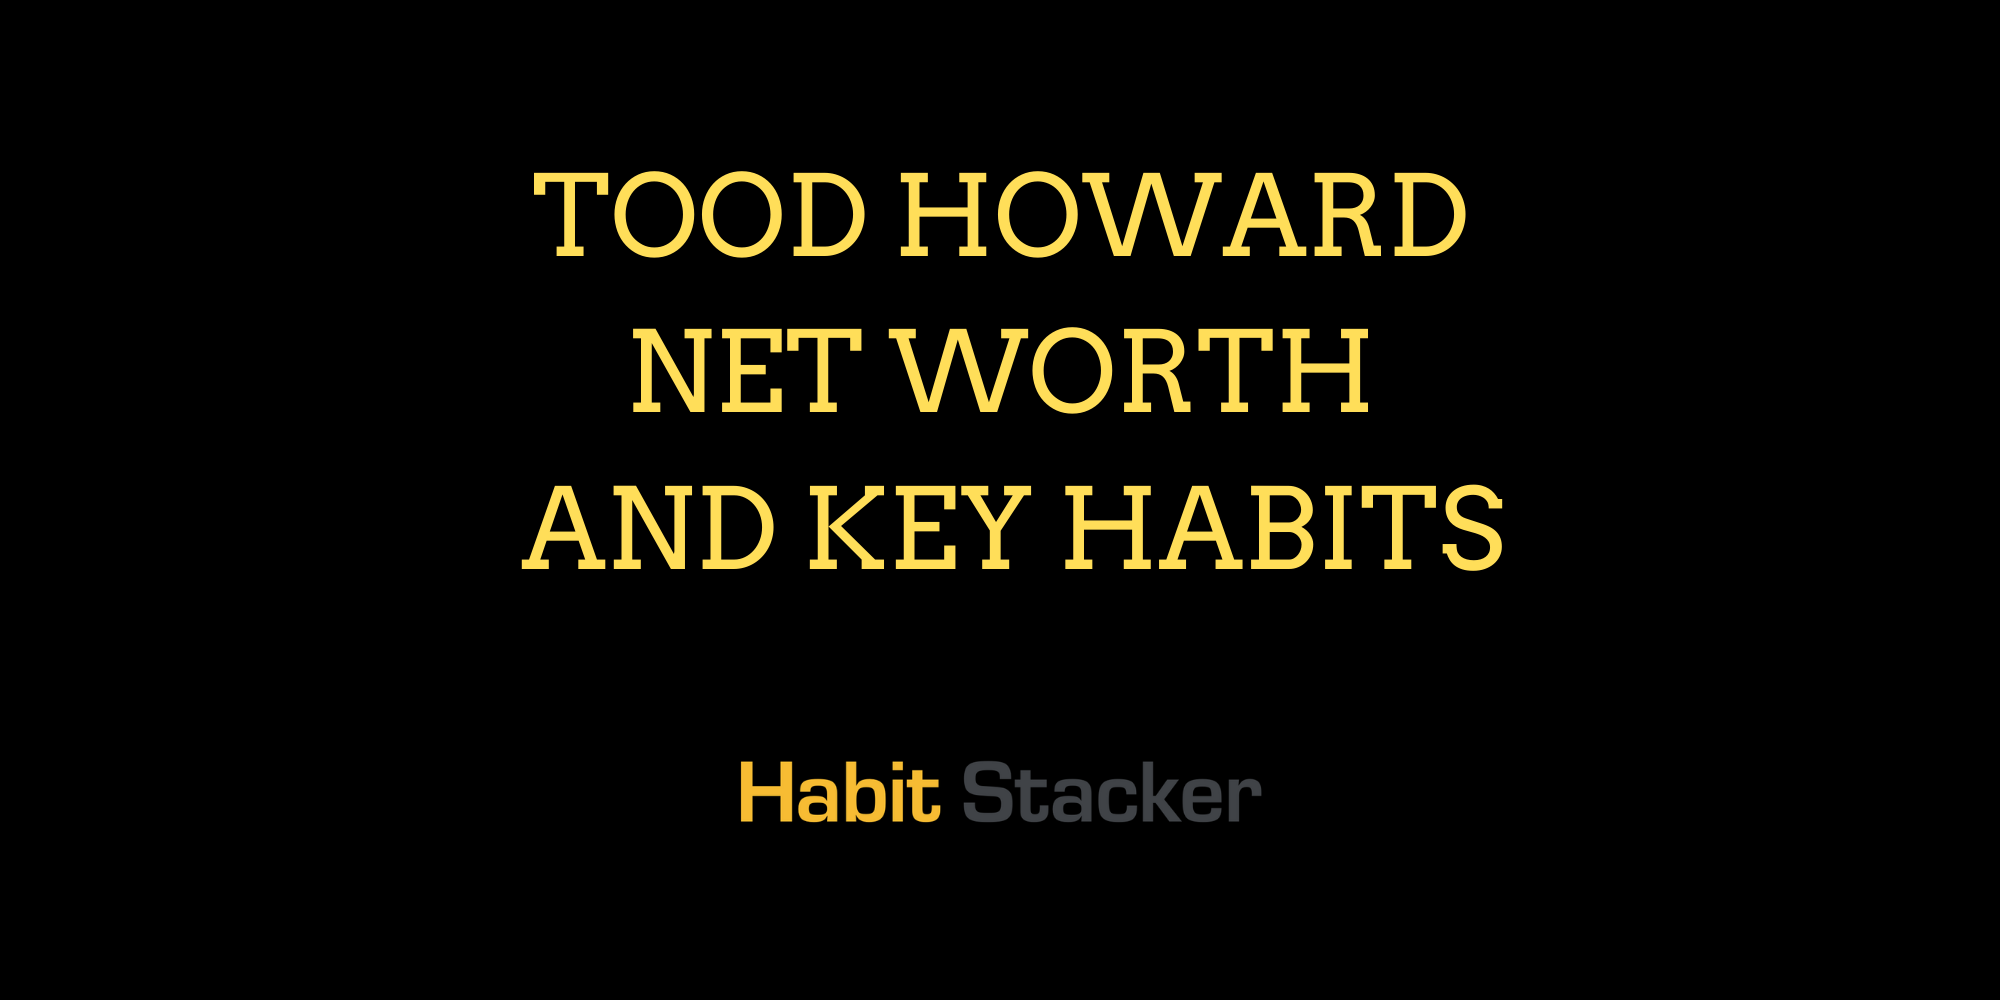 Todd Howard Net Worth and Key Habits